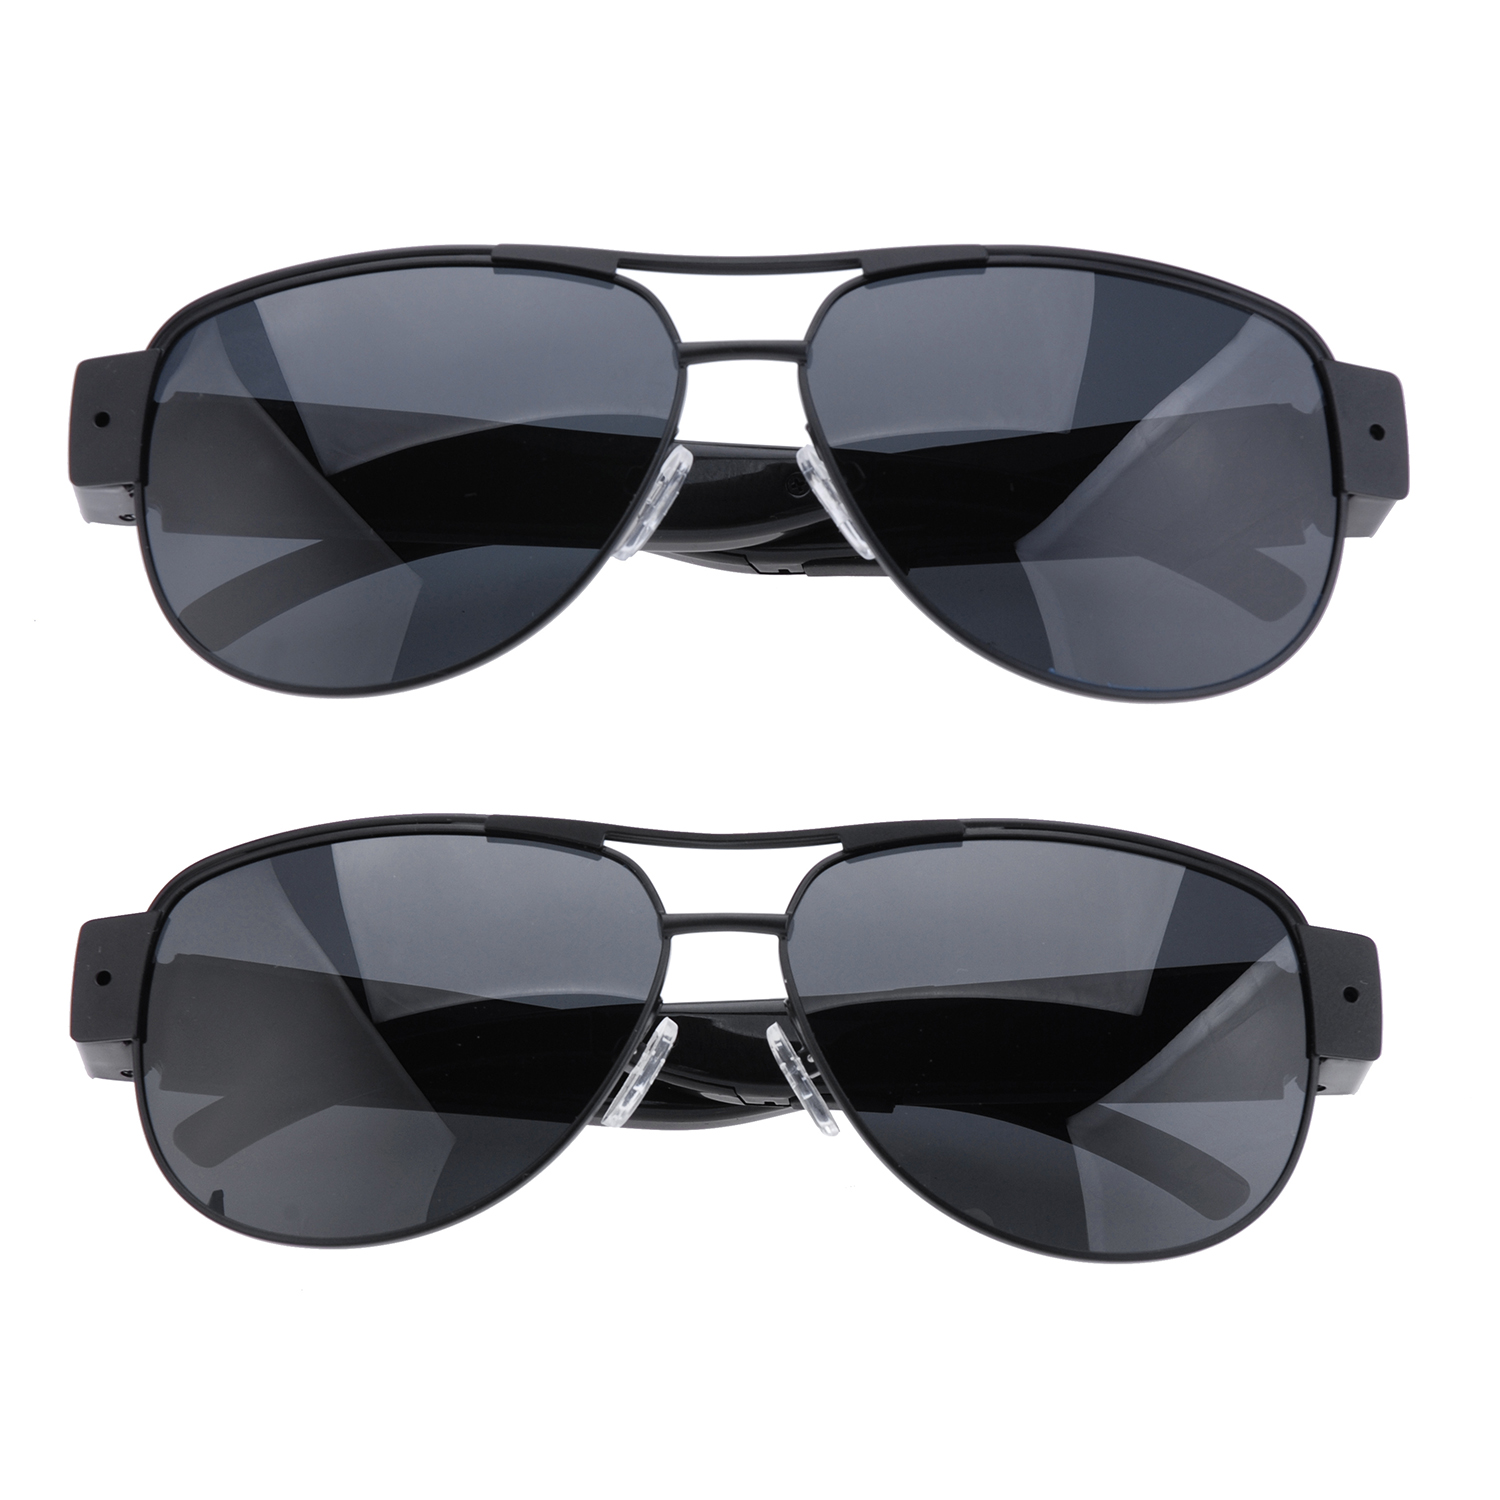 SPIED CAT HD 1080P Polarized <font><b>DVR</b></font> Mini Camera Sunglasses Digital Video Recorder Glasses Sport Camcorder secret cctv black <font><b>cam</b></font> image